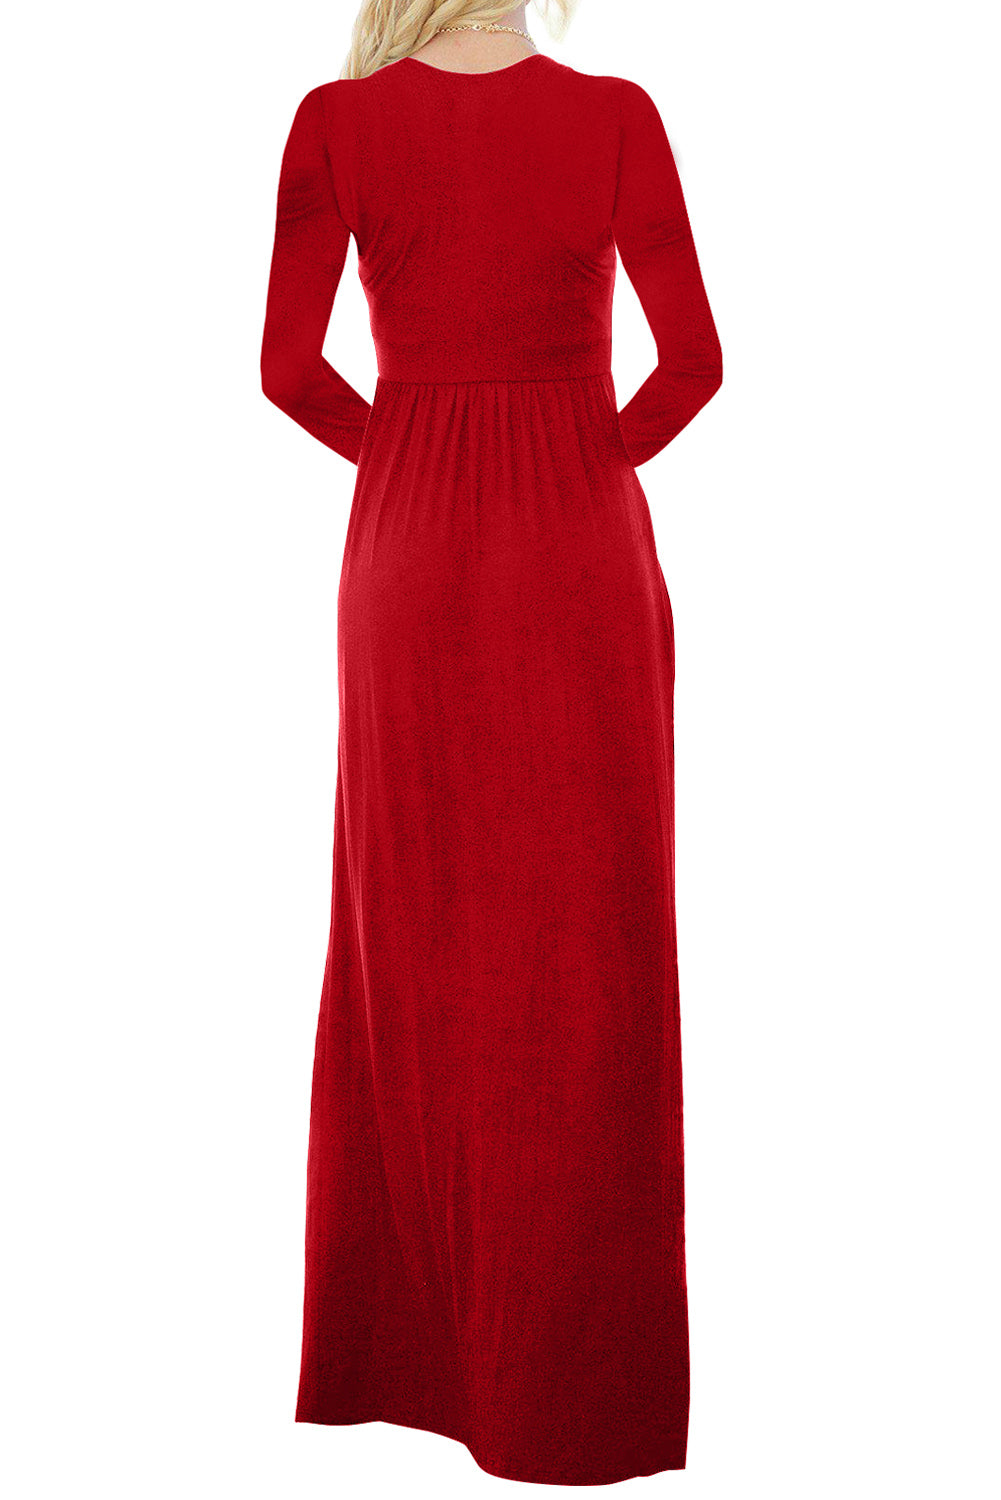 Red Long Sleeve Button Down Casual Maxi Dress